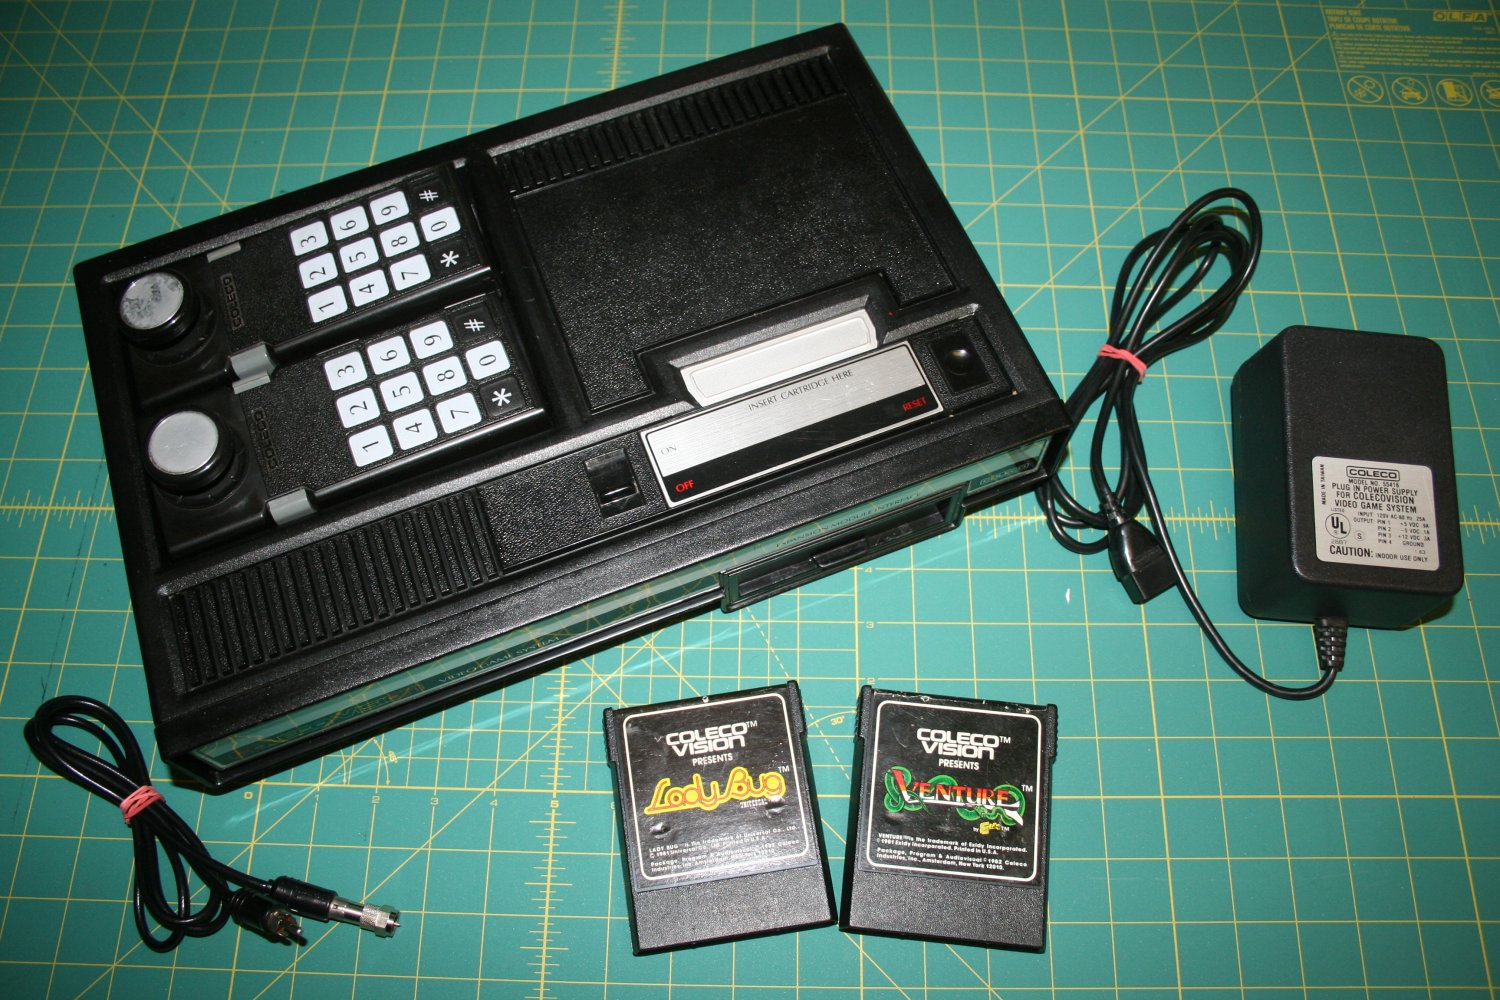 ColecoVision Console of the Insect